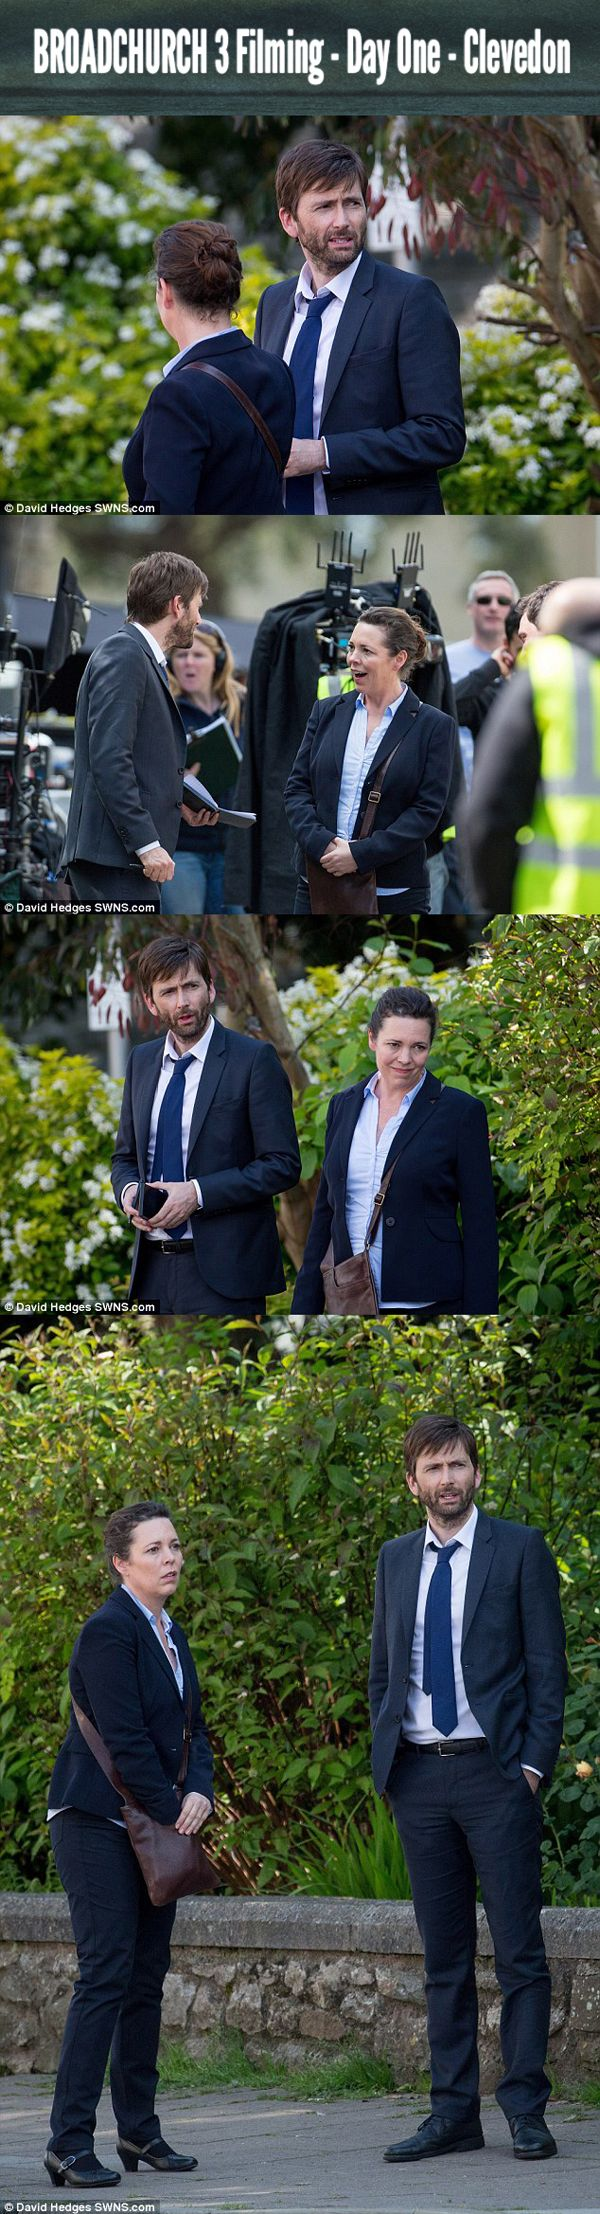 #Broadchurch 3 Filming - Day One — Clevedon - Finally after a long wait, Olivia Colman and David Tennant step out to, once again, reprise their roles as TV Detectives DS Ellie Miller & DI Alec Hardy. For, what will be, the TV duo's last series. :,( *sniff - ifourdezign |  Photos: ©David Hedges SWNS.com